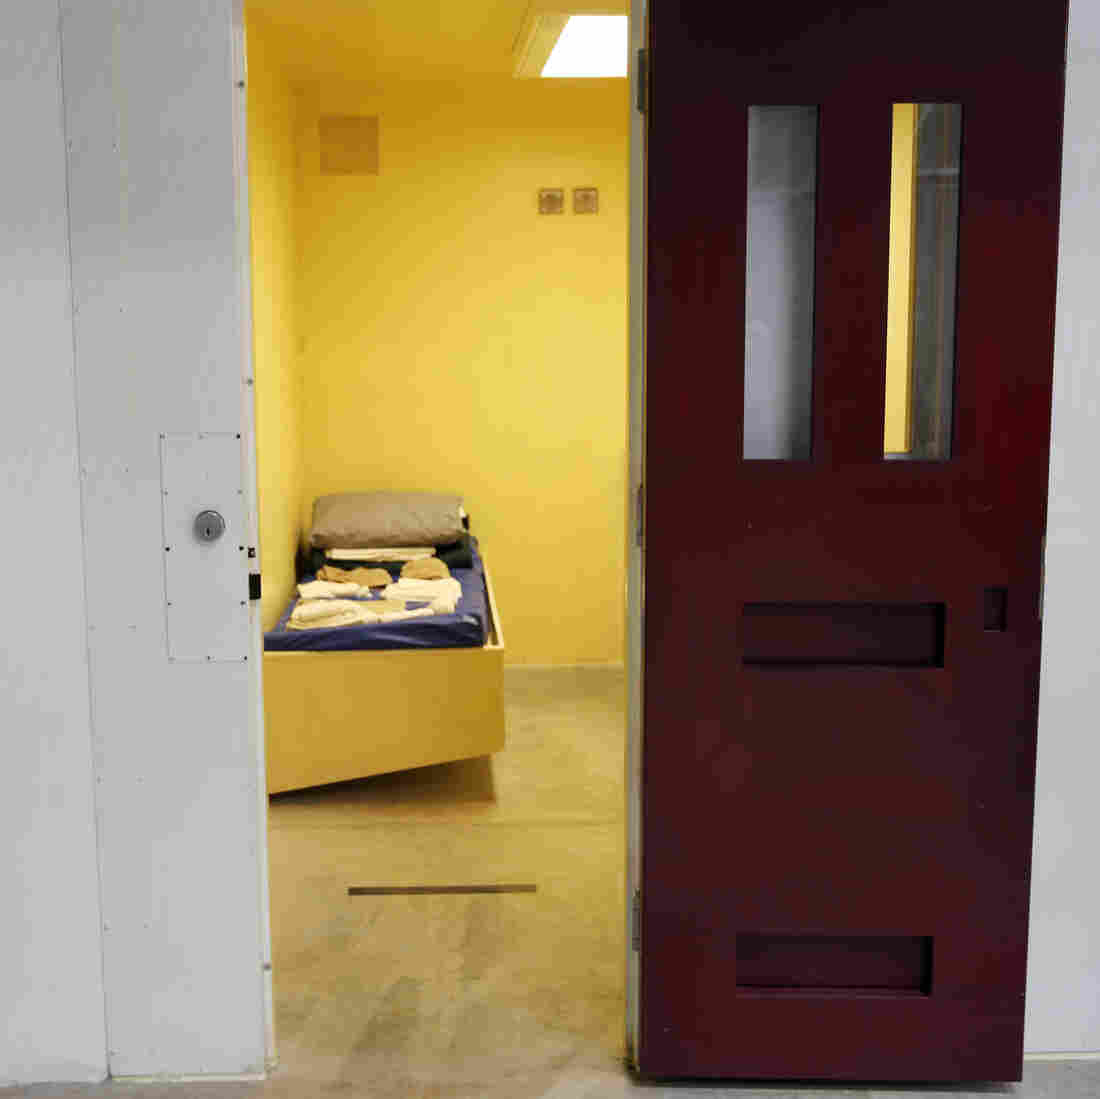 A detainee cell in Camp 6 inside the U.S. detention center at Guantanamo Bay, Cuba in February.